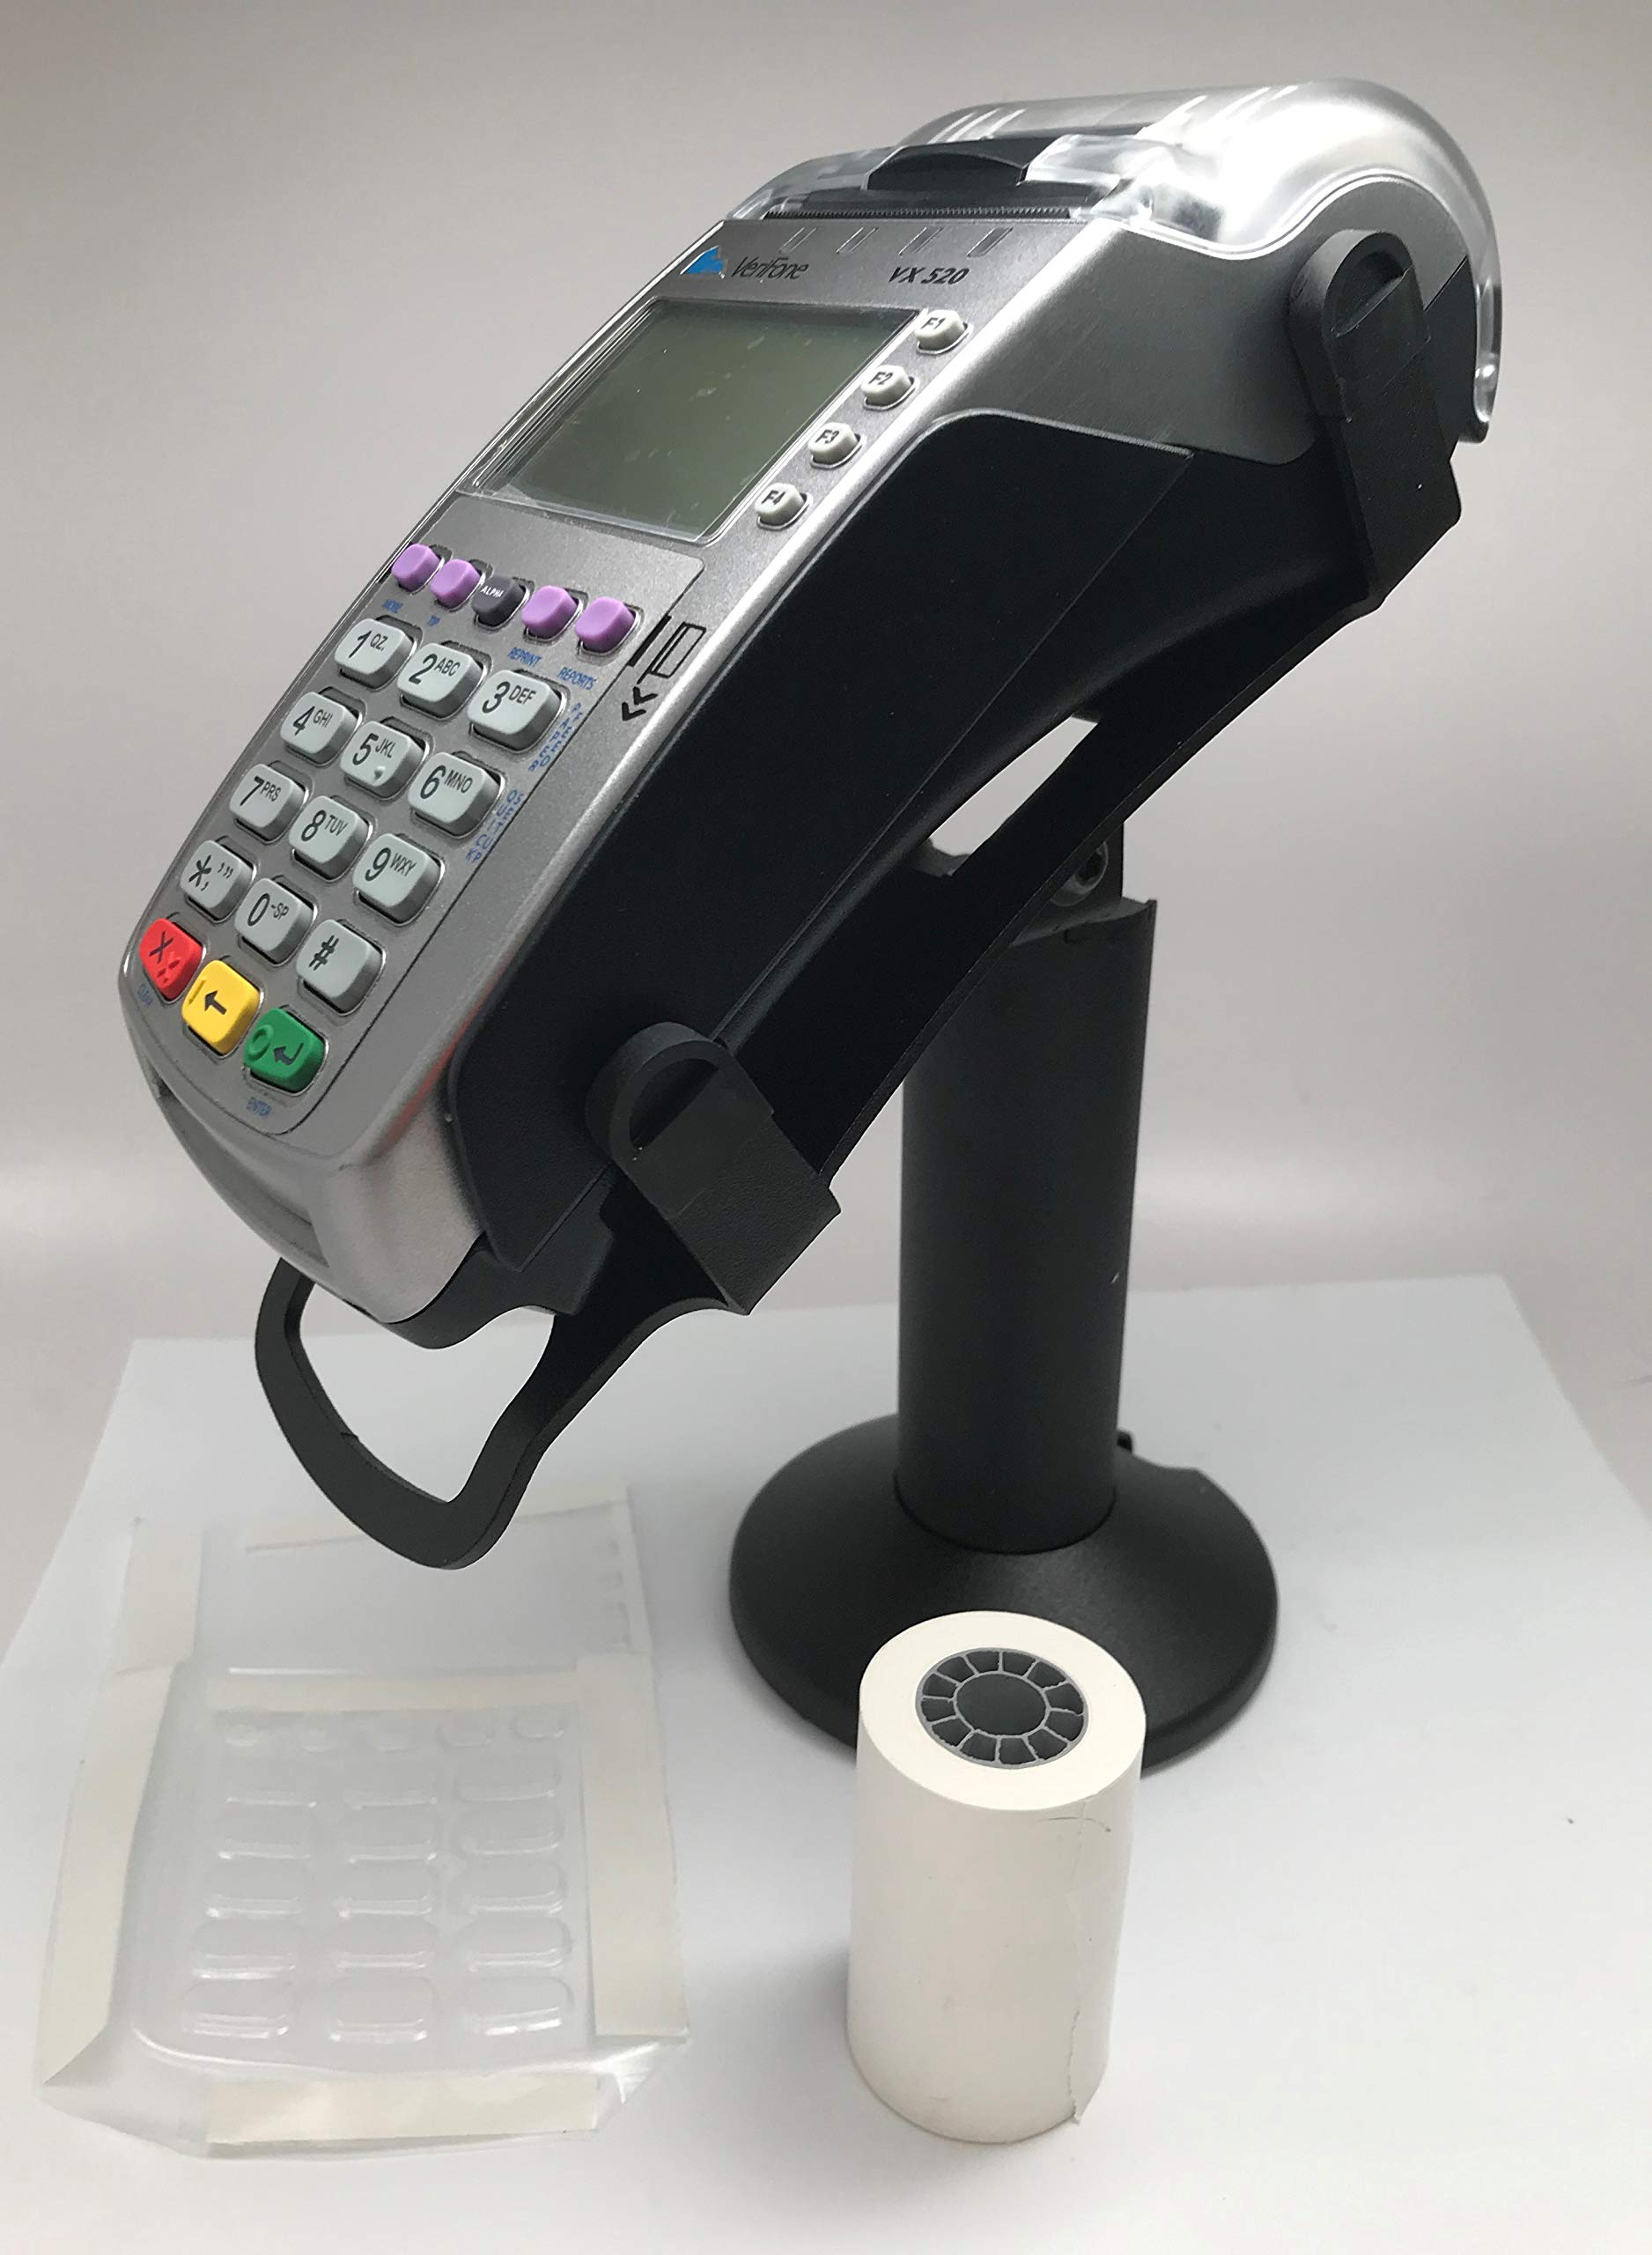 Verifone Vx520 EMV CTLS Terminal, Swivel Stand, Full Device Spill Cover and 2-1/4'' x 50' (24 Rolls) Thermal Paper